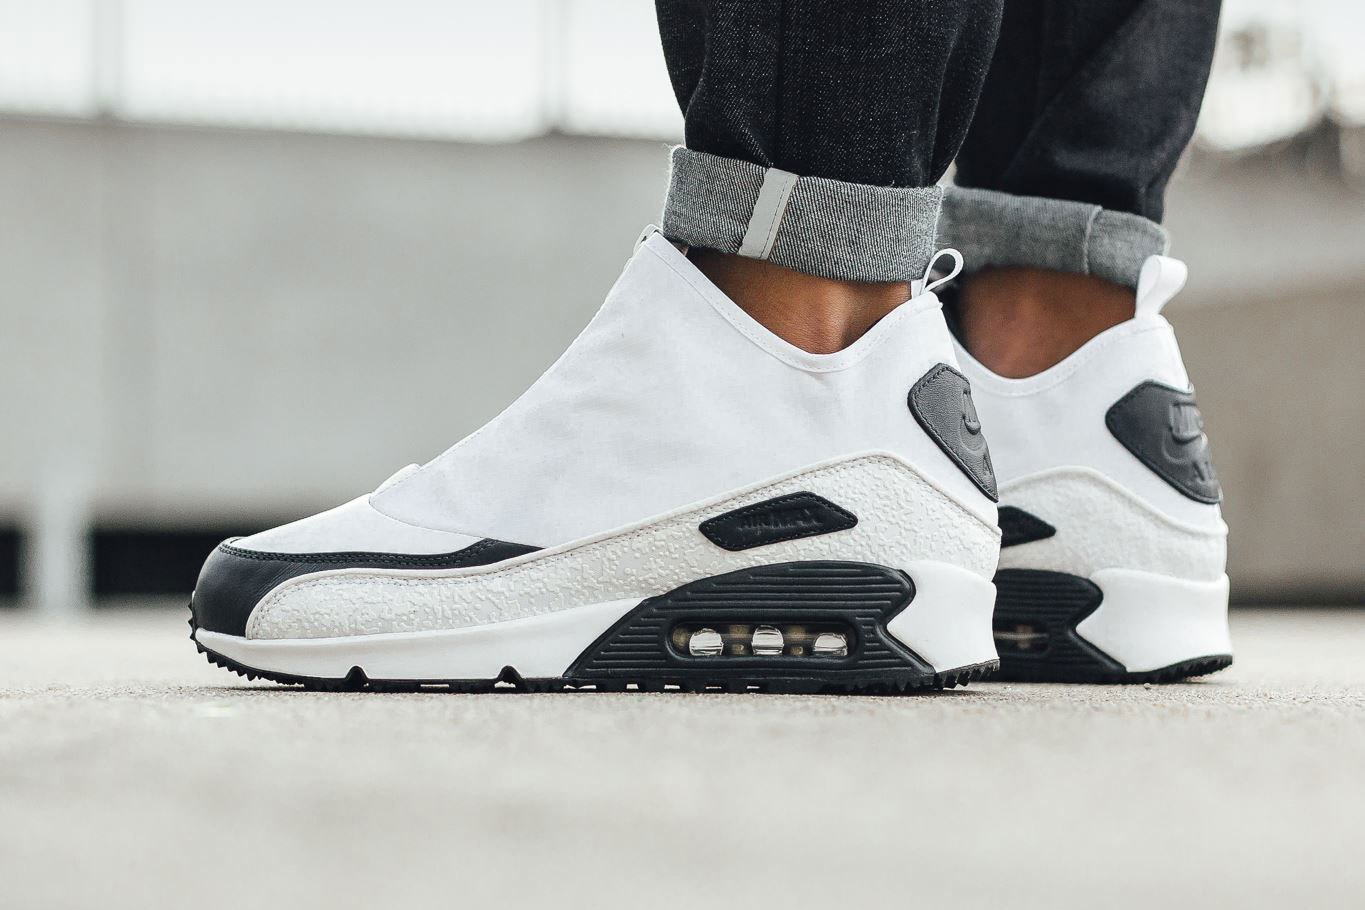 Nike Air Max 90 Utility White - TRENDS periodical